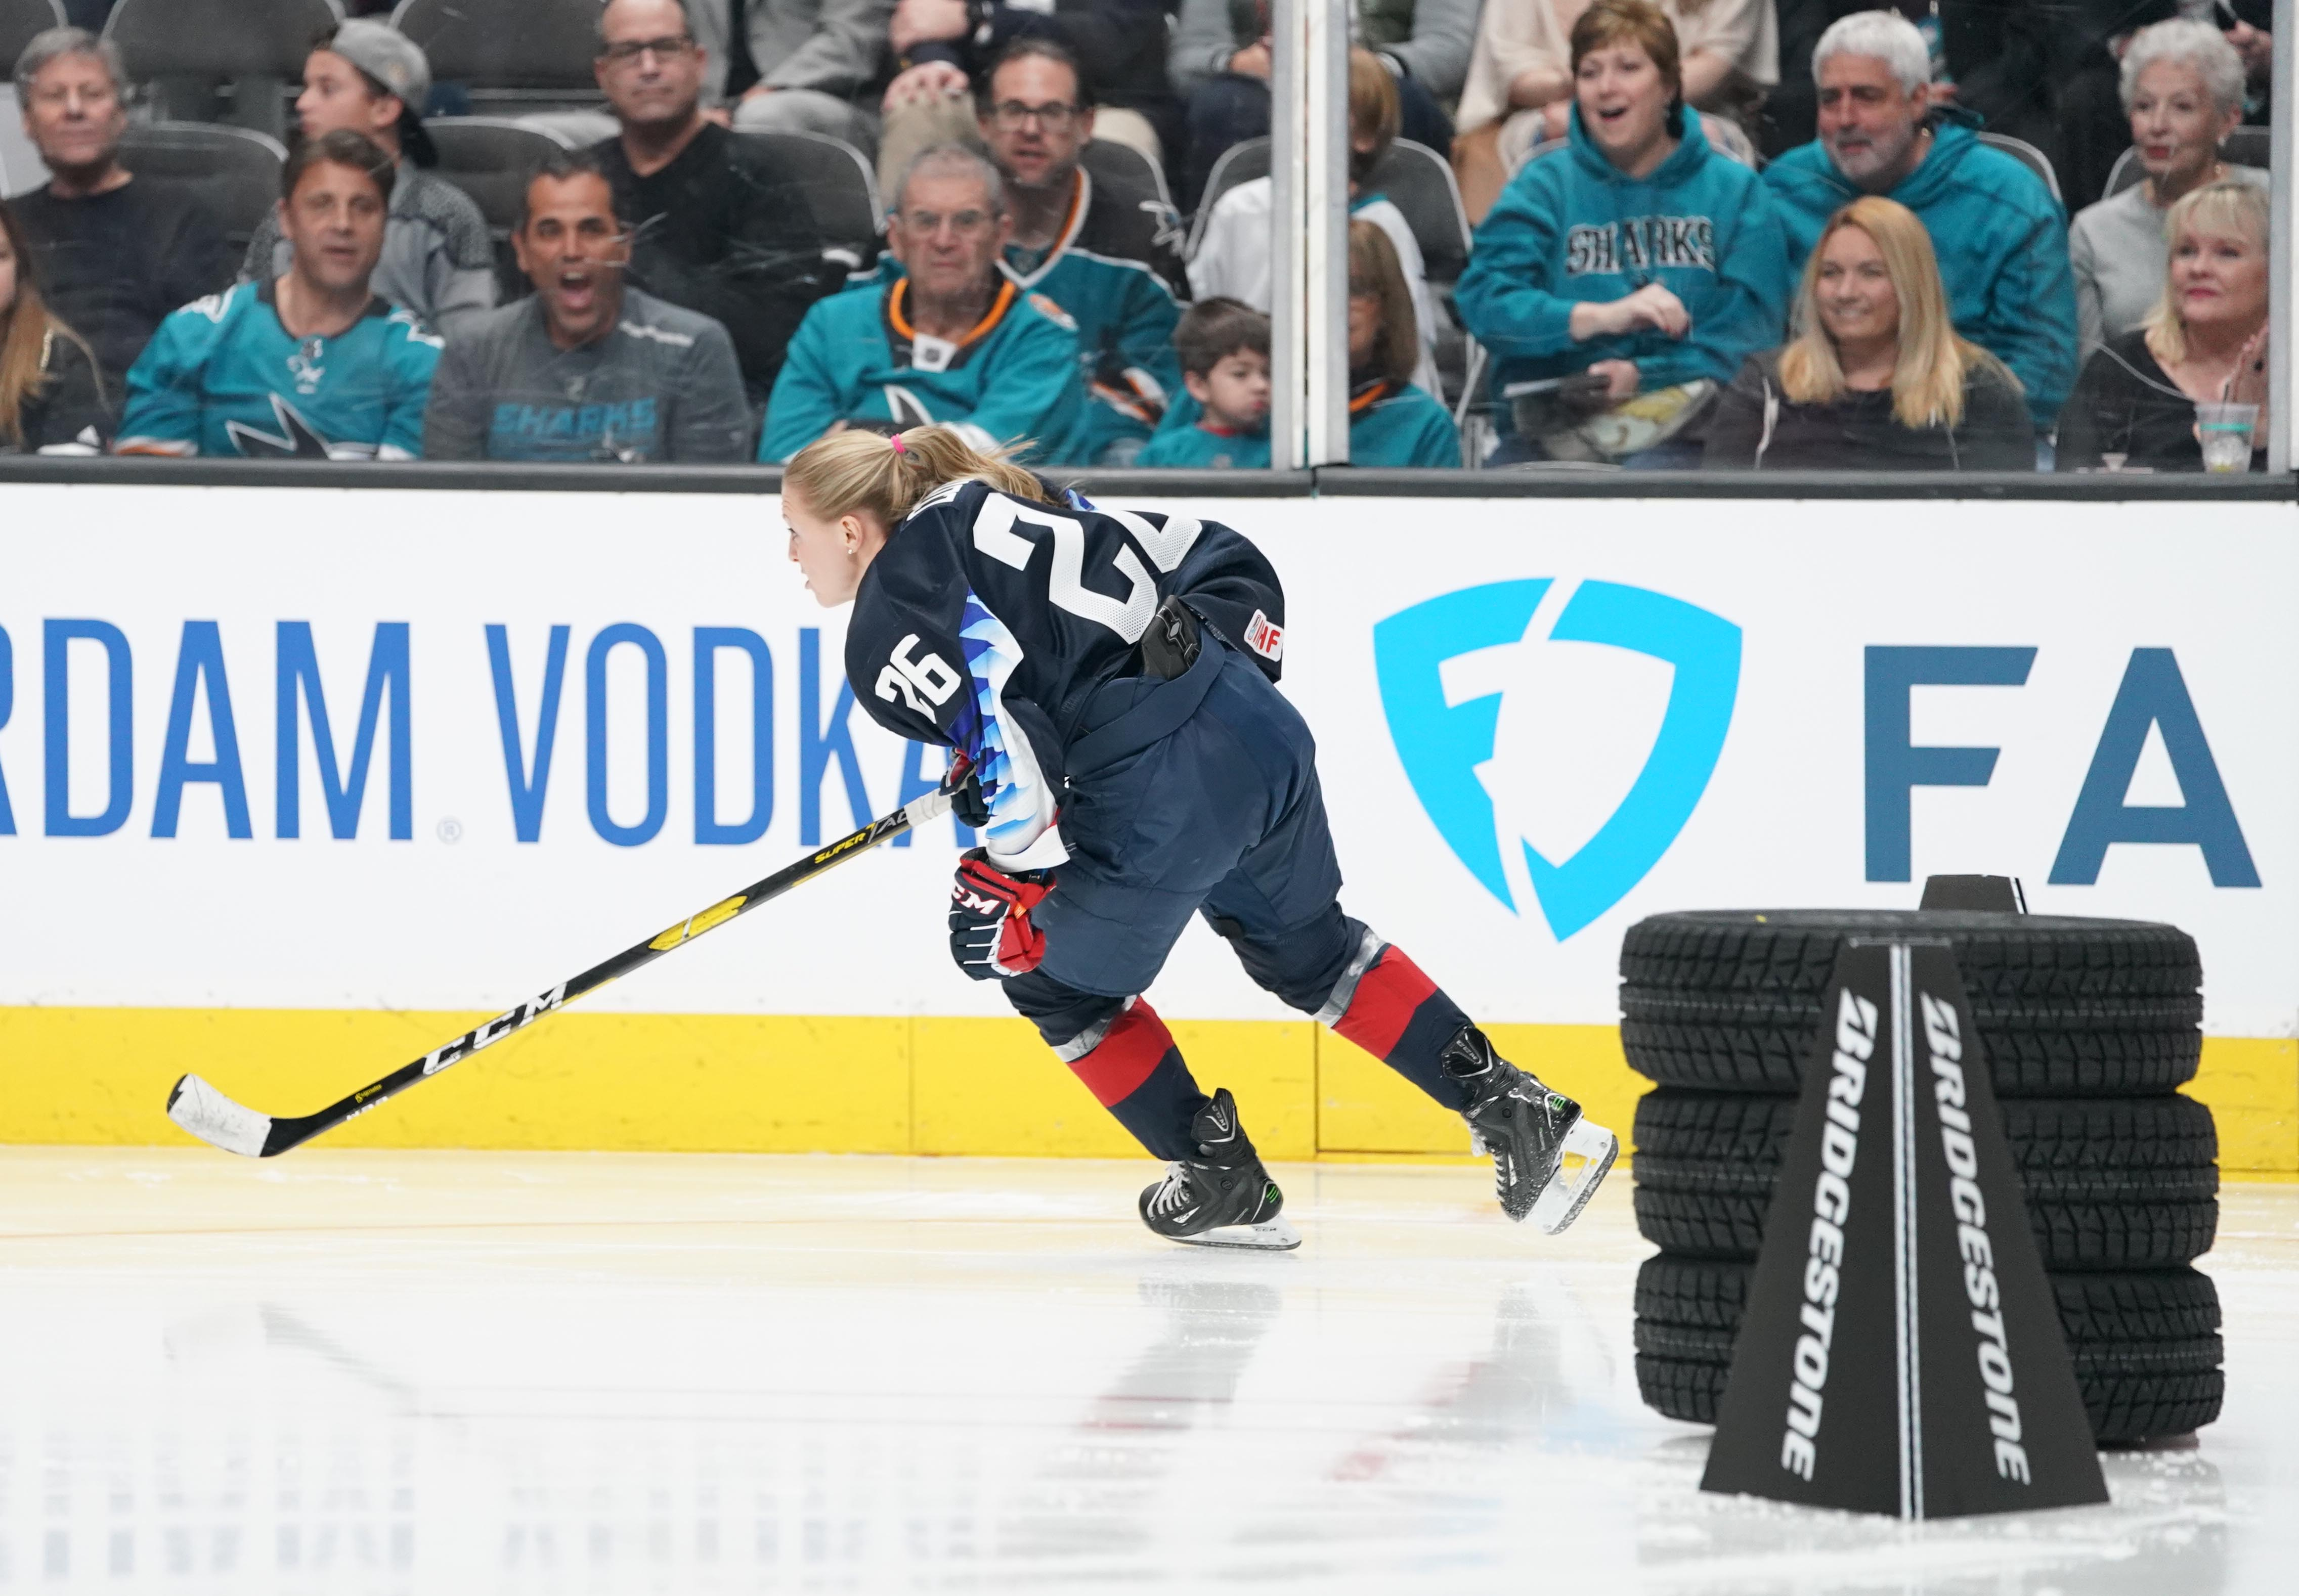 Jan 25, 2019; San Jose, CA, USA; USA women's ice hockey player Kendall Coyne-Schofield in the fastest skater competition in the 2019 NHL All Star Game skills competition at SAP Center. Mandatory Credit: Kyle Terada